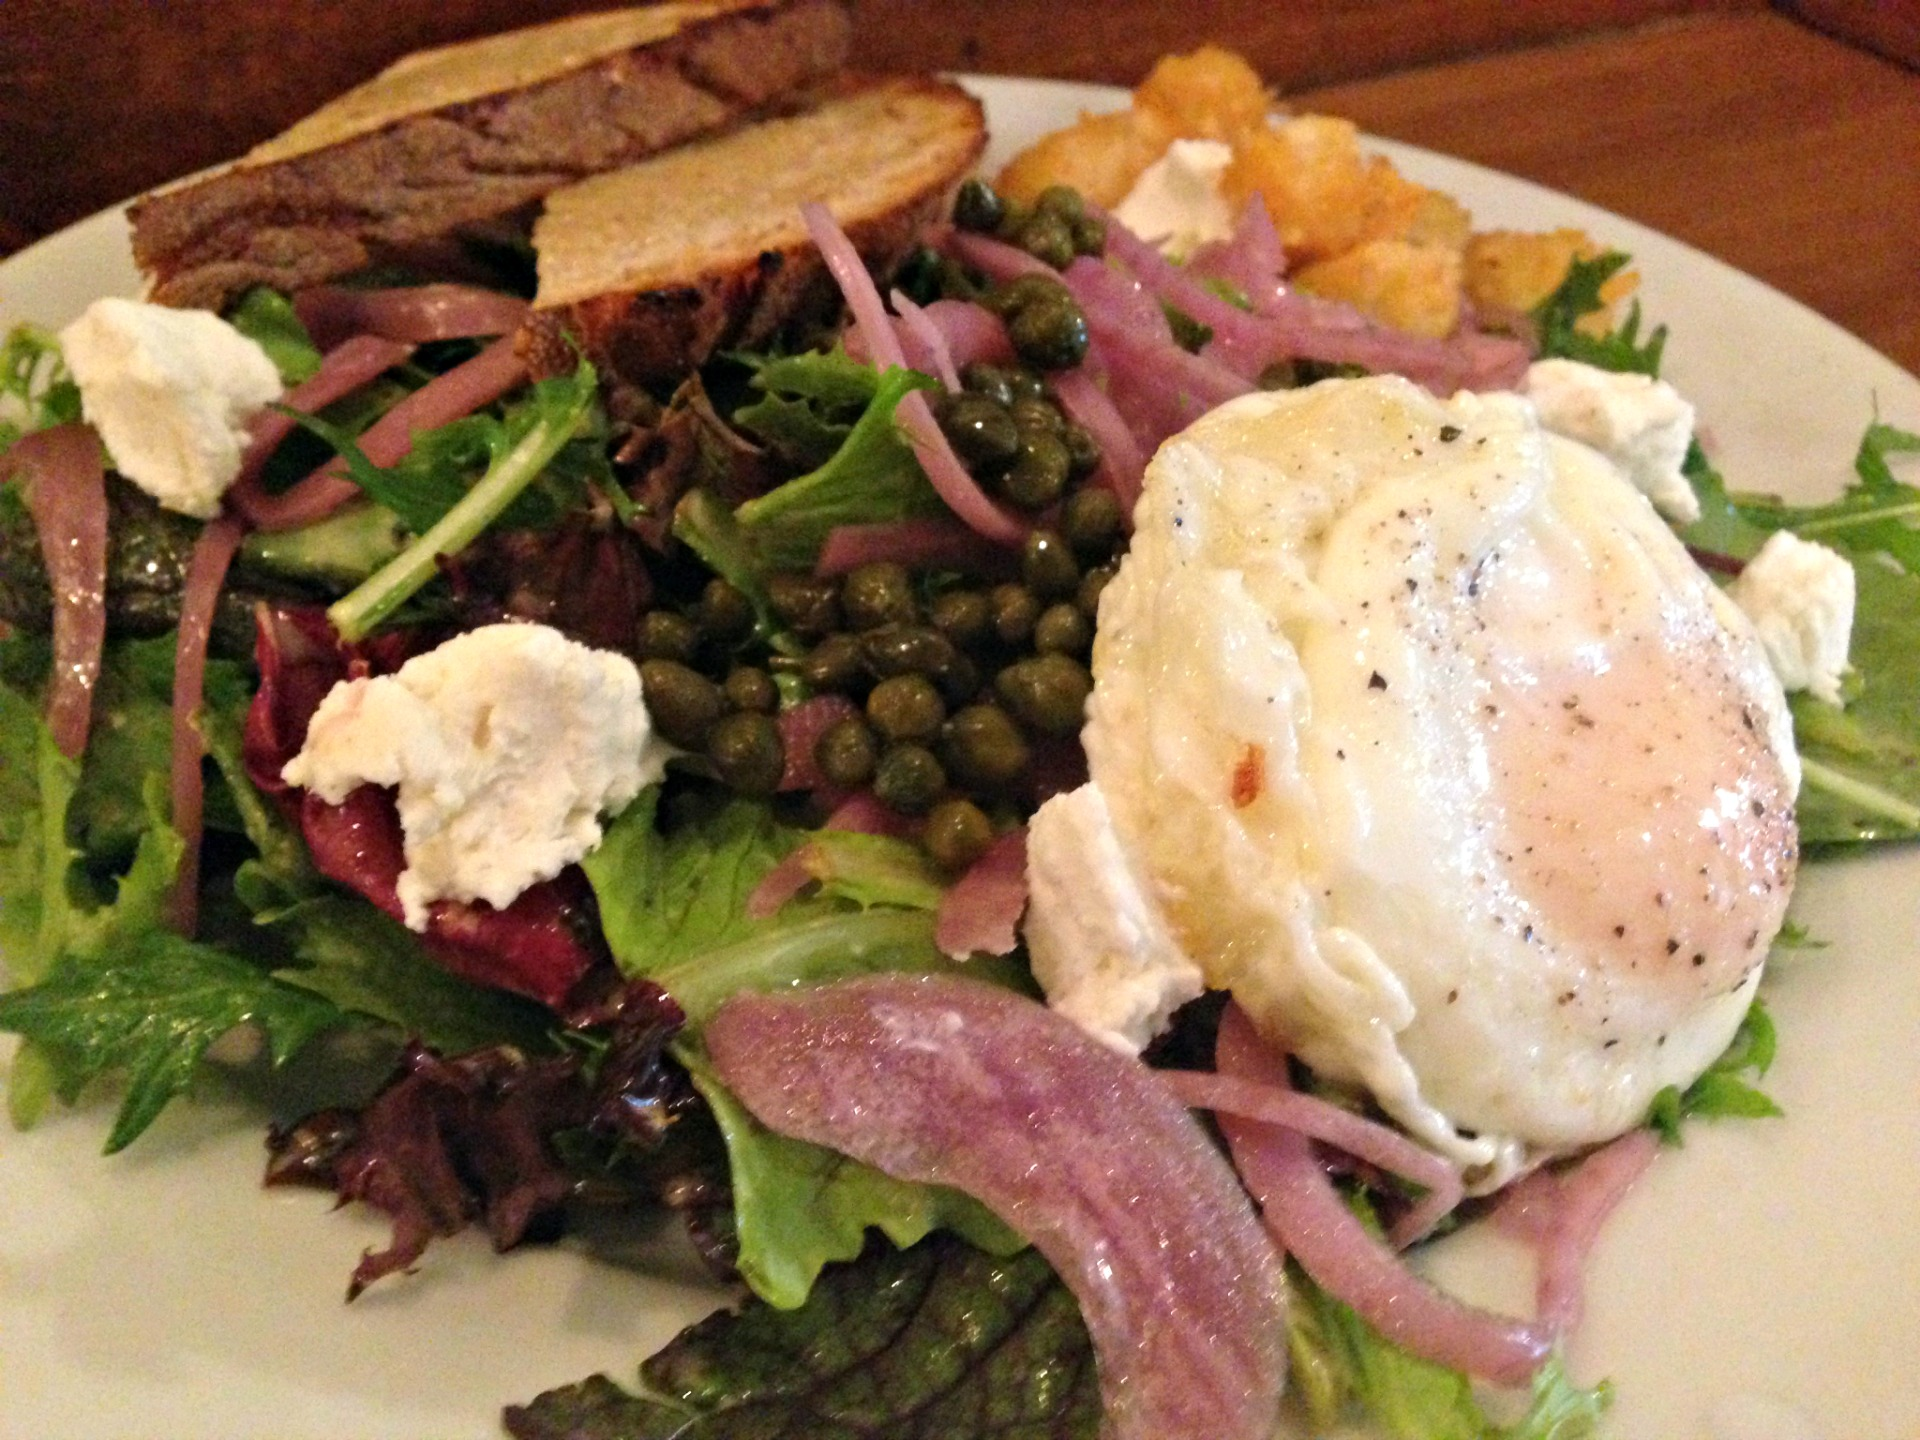 The Breakfast Salad at Stag's.